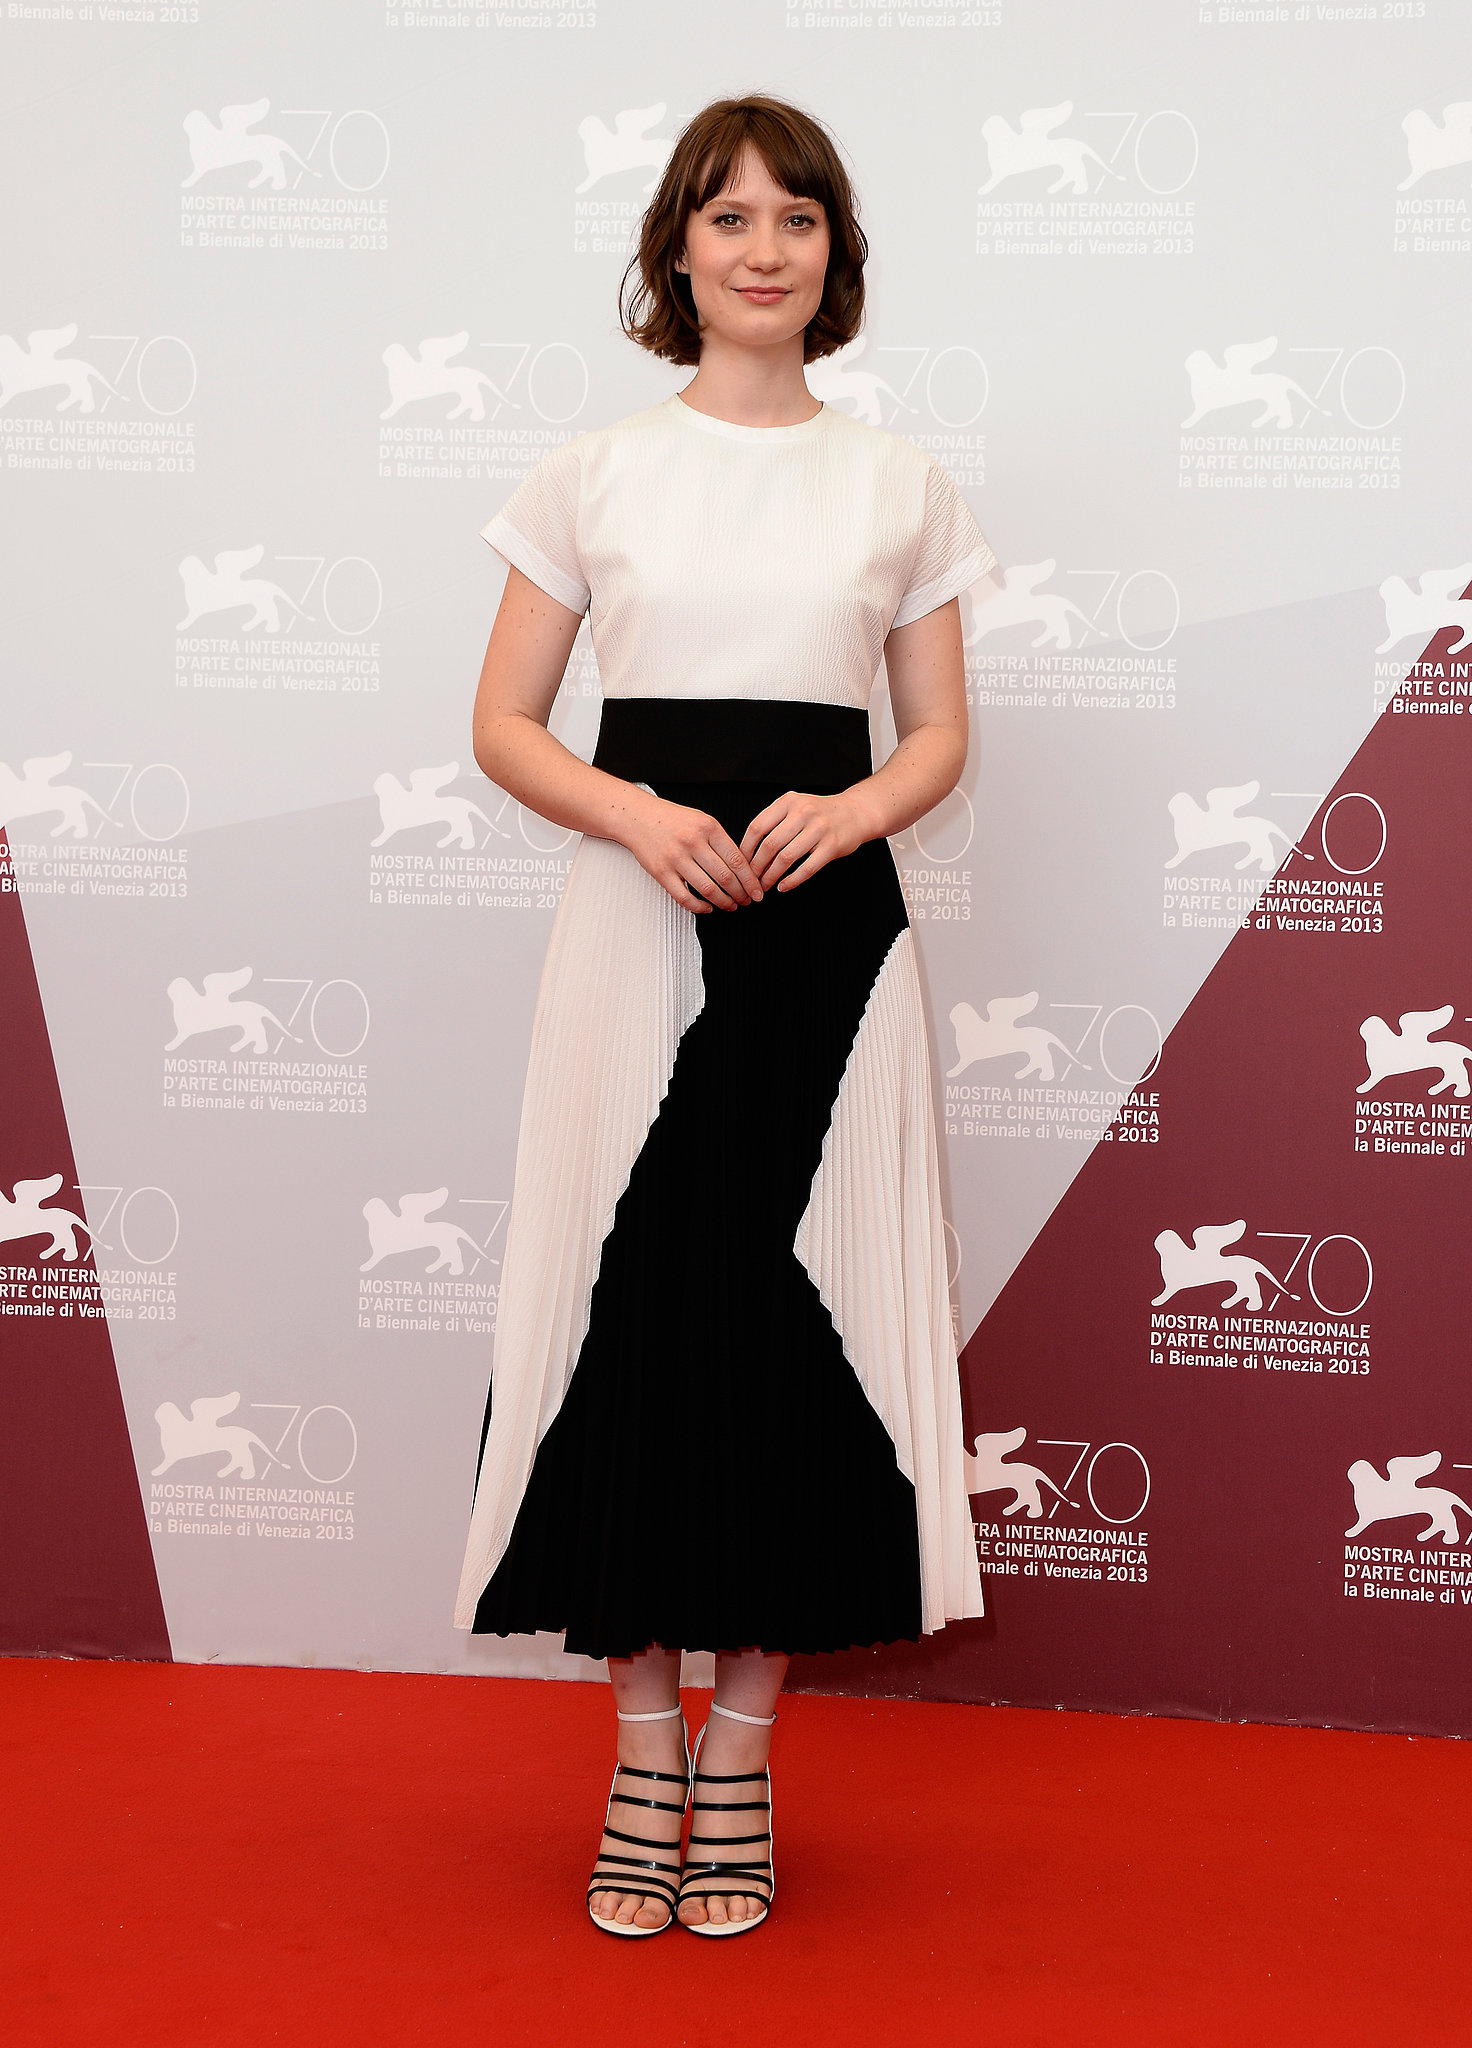 Mia Wasikowska posed on the red carpet at the photocall for Tracks.